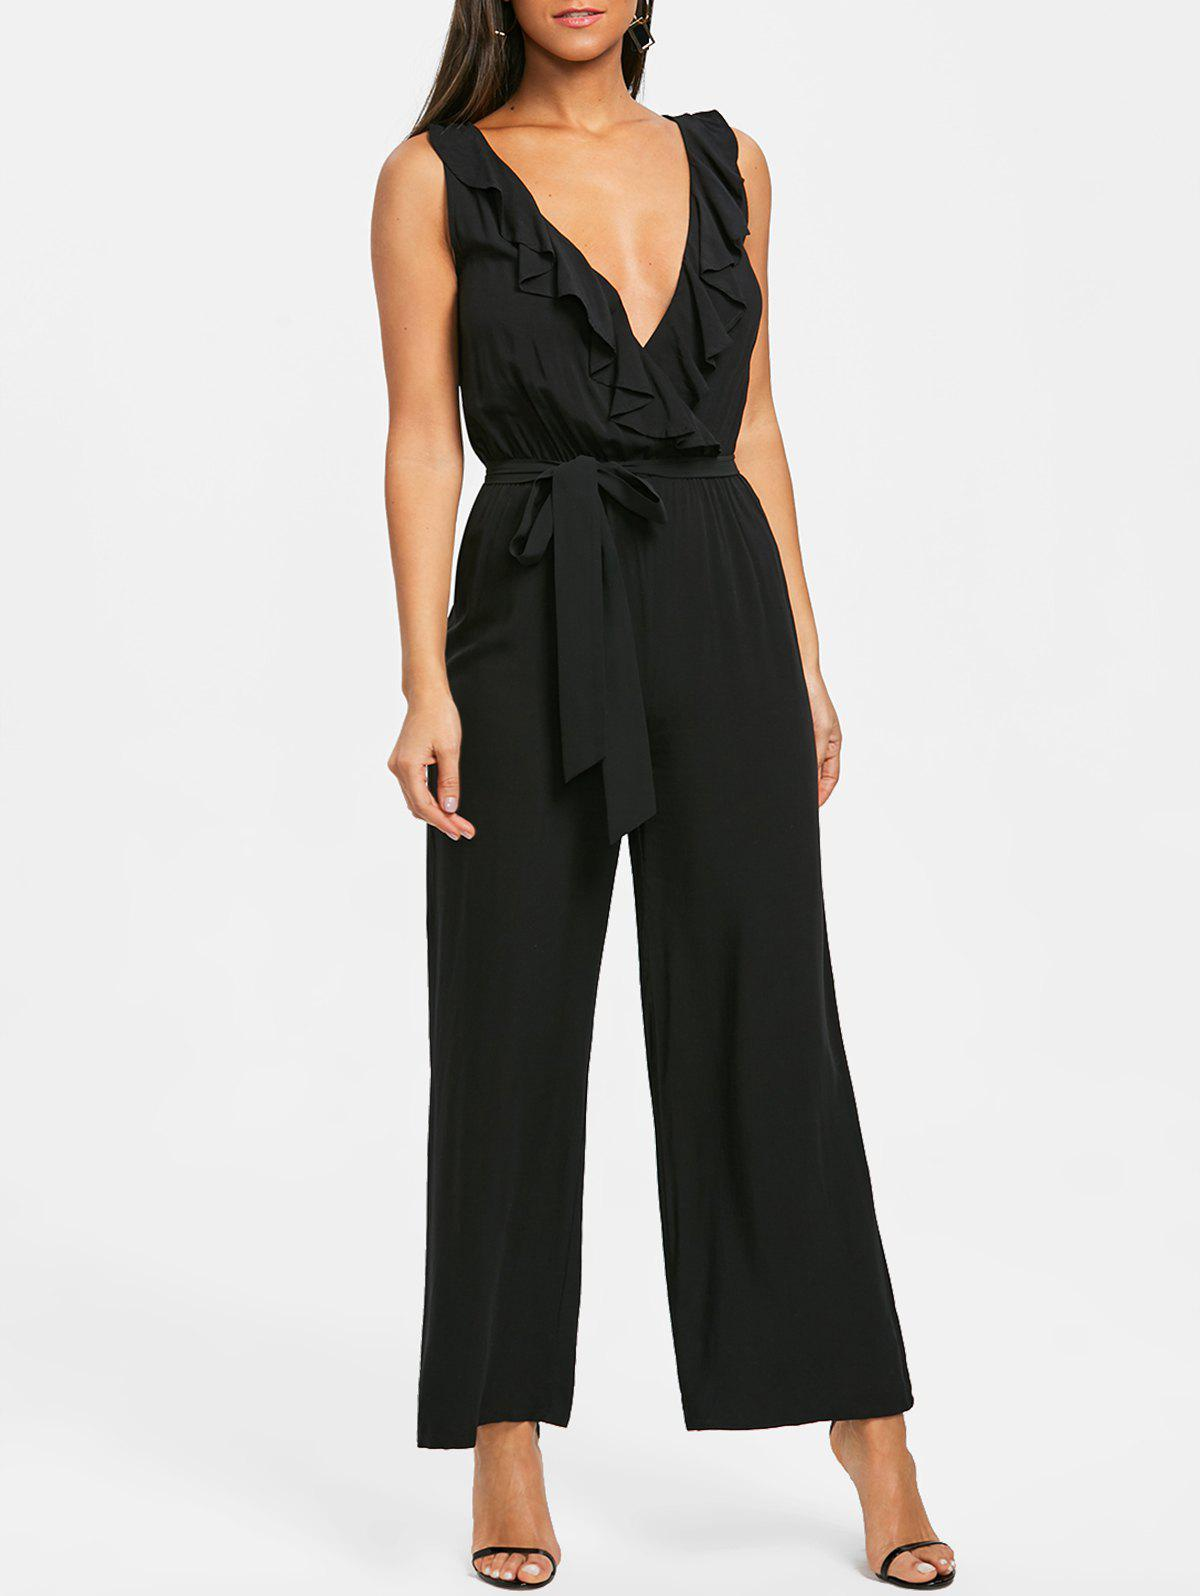 New Plunging Neckline Ruffle Palazzo Jumpsuit